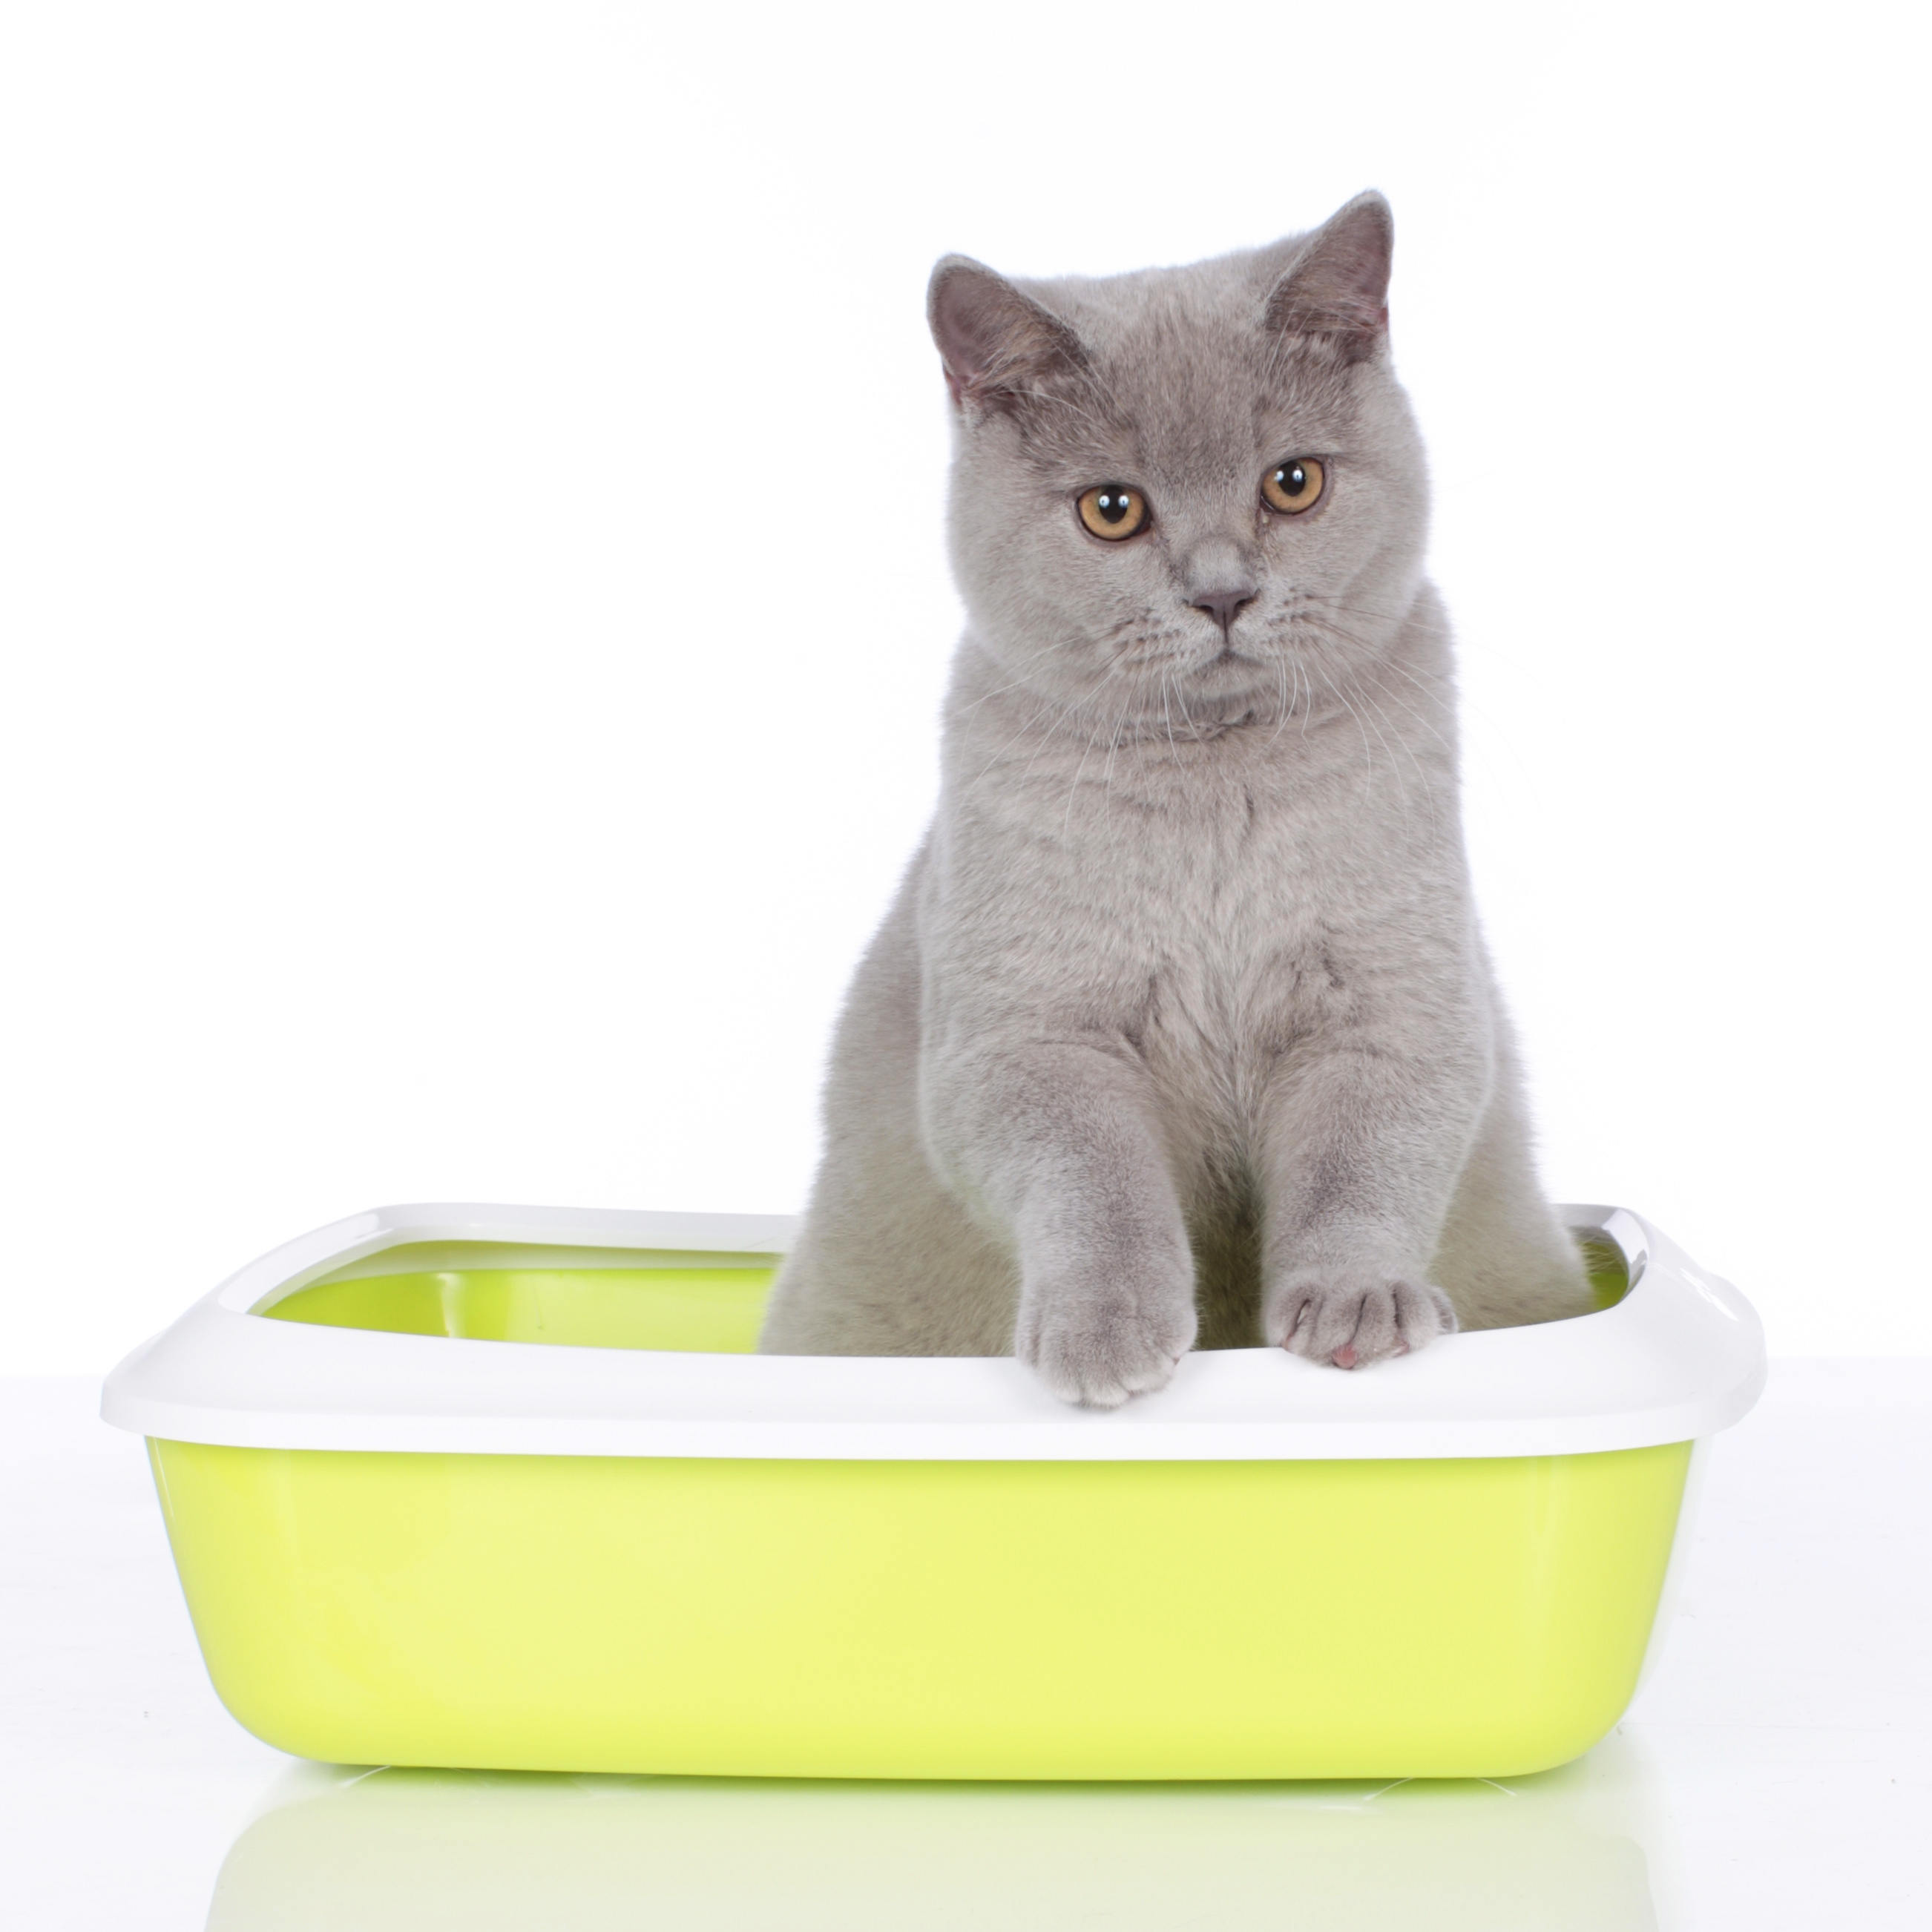 basic litter box rules